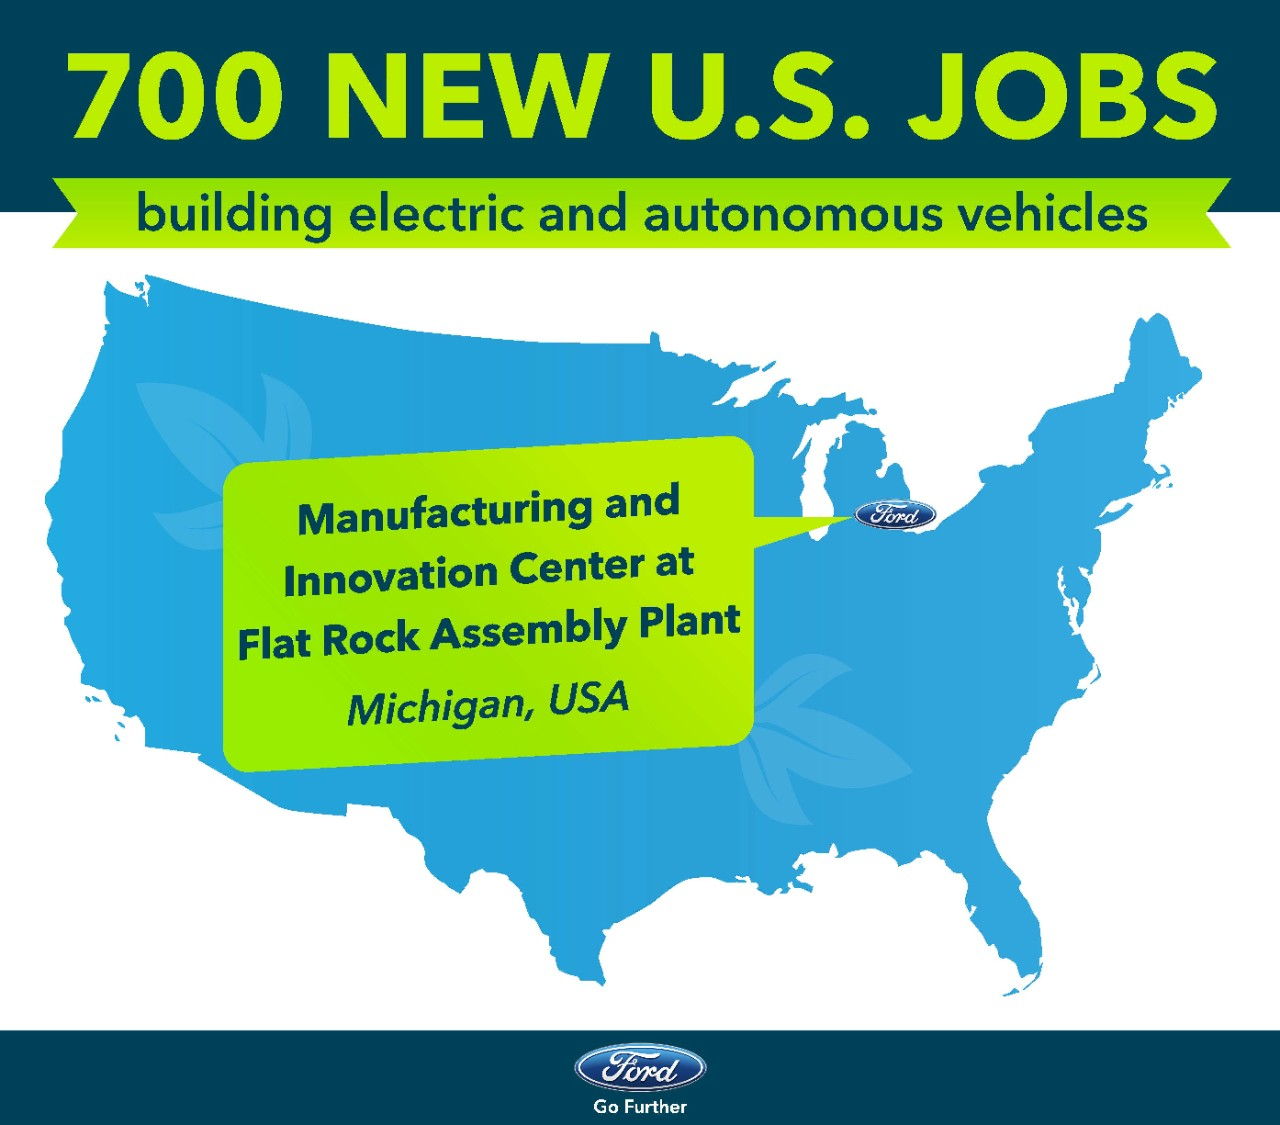 Ford Announces Expansion, Expects 700 New Jobs